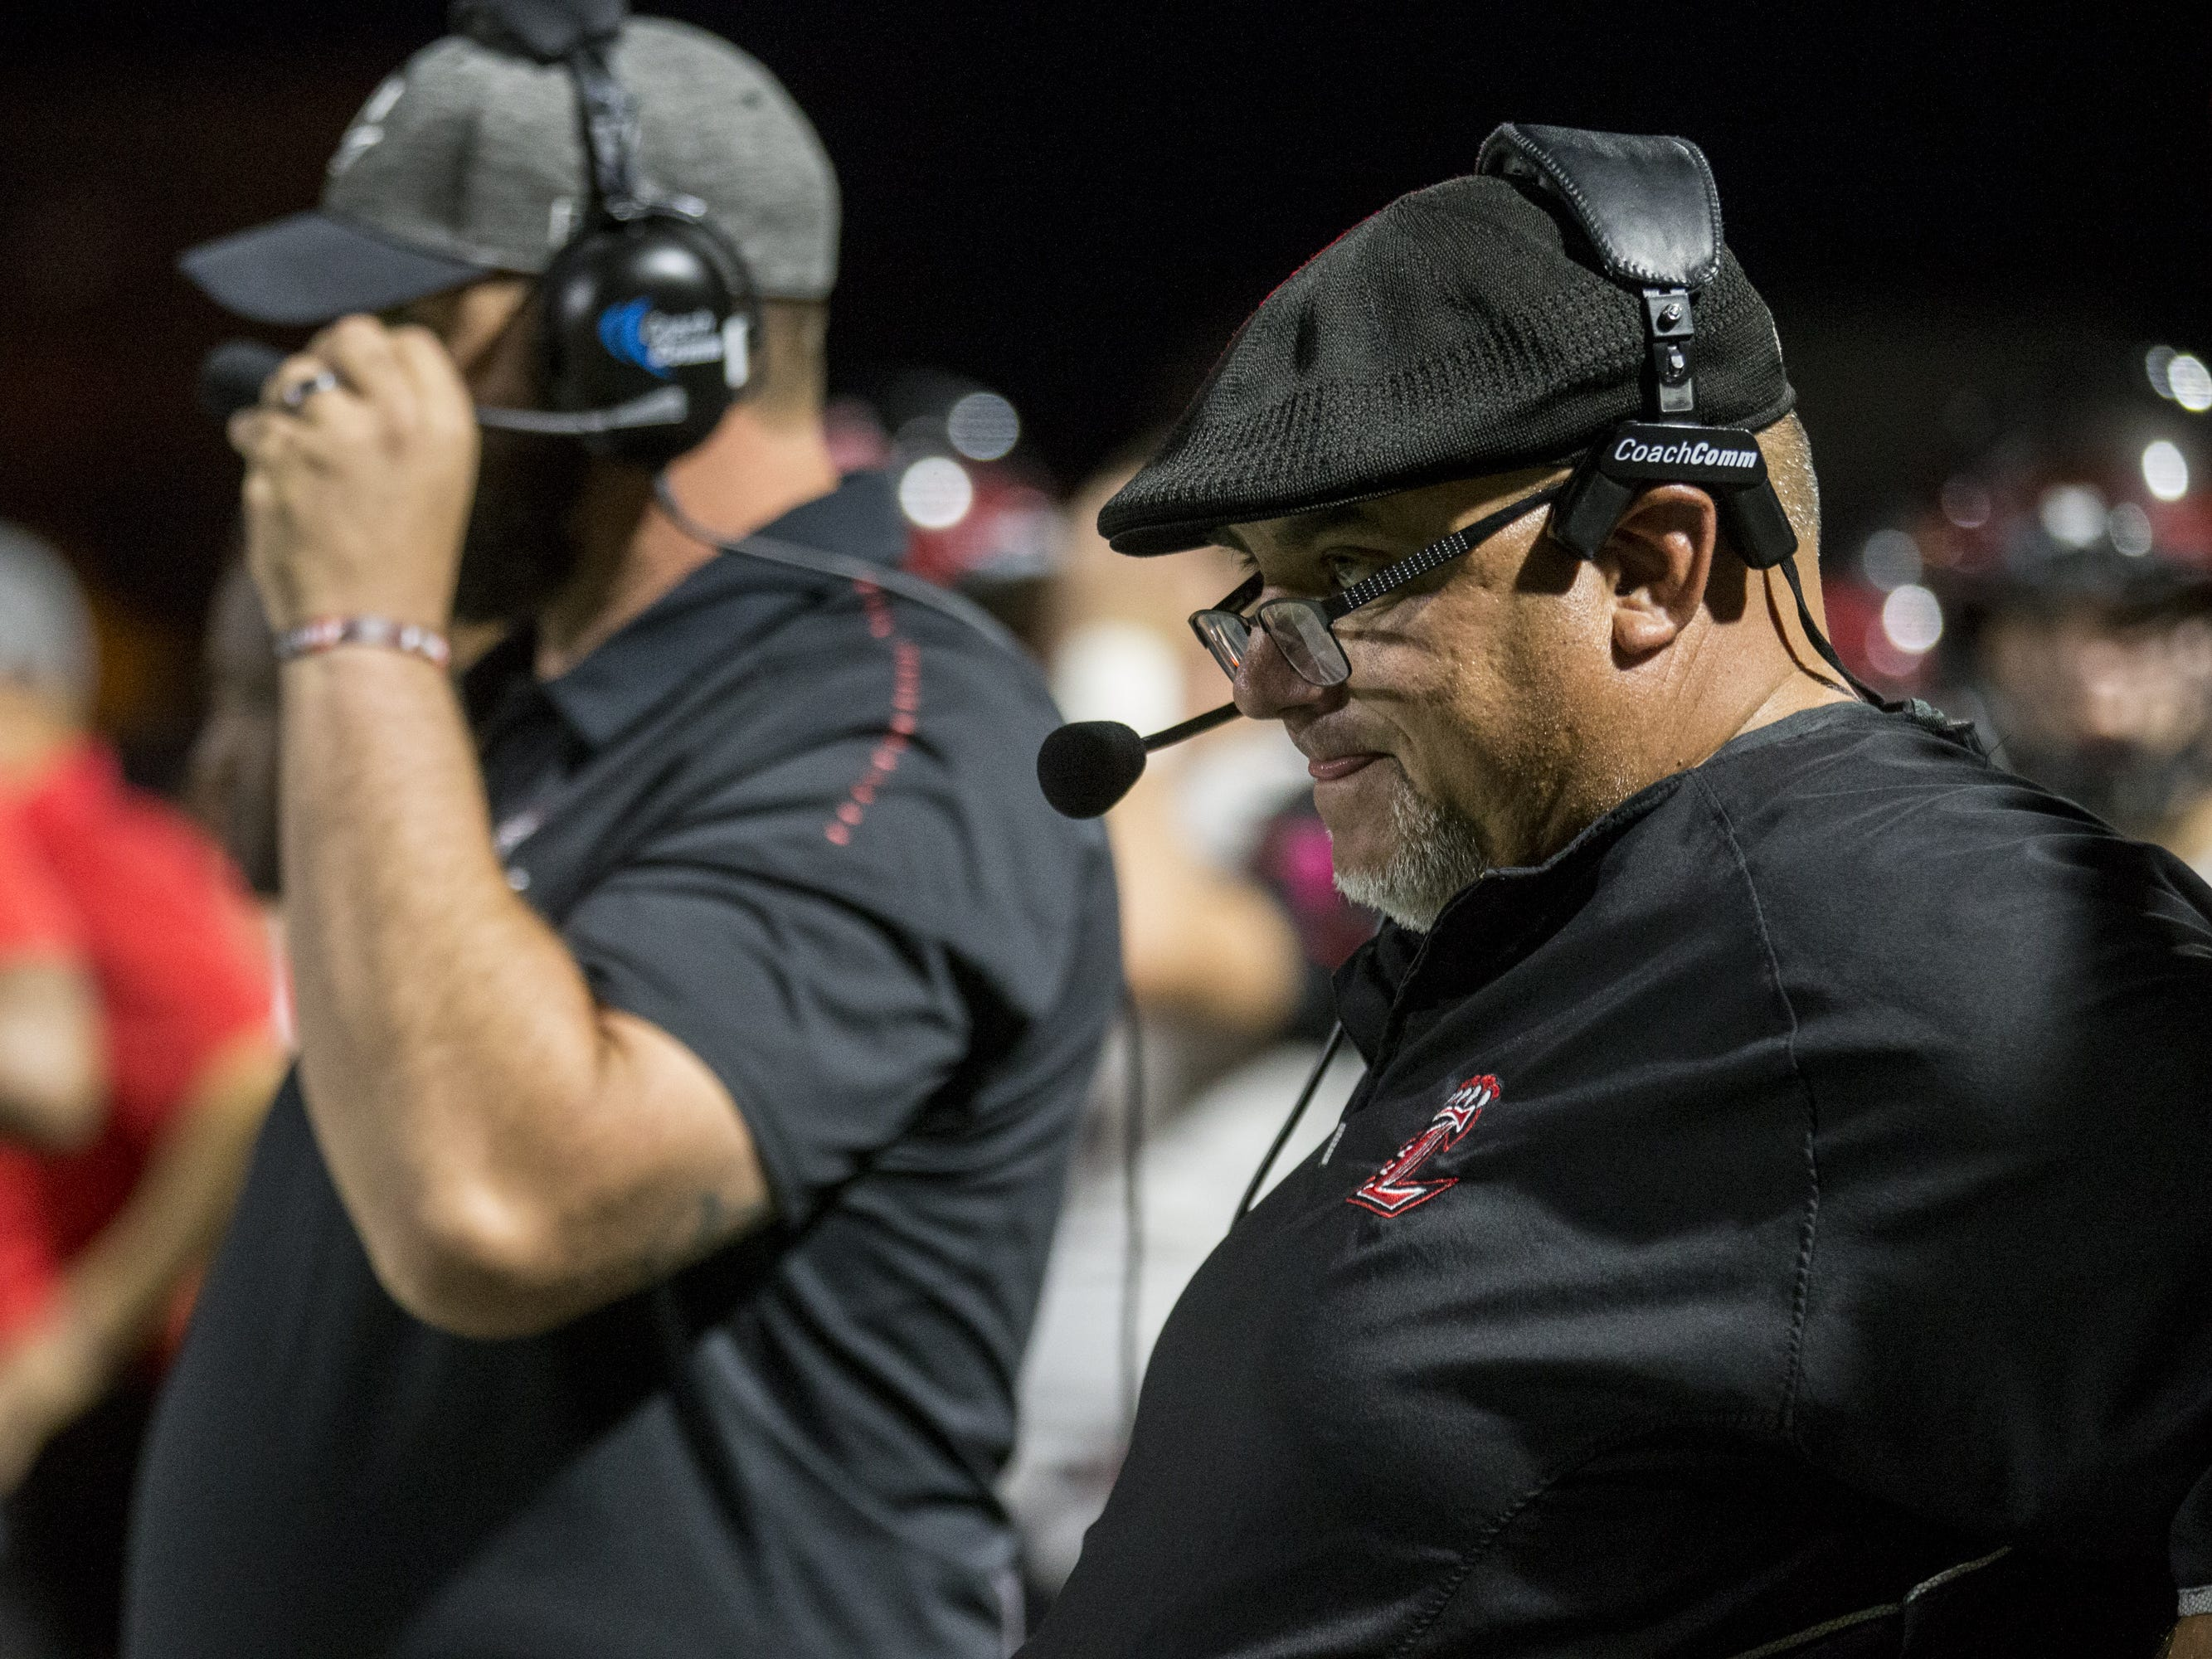 Liberty head coach Mark Smith watches during the game against Pinnacle on Friday, Oct. 12, 2018, at Pinnacle High School in Phoenix.  #azhsfb